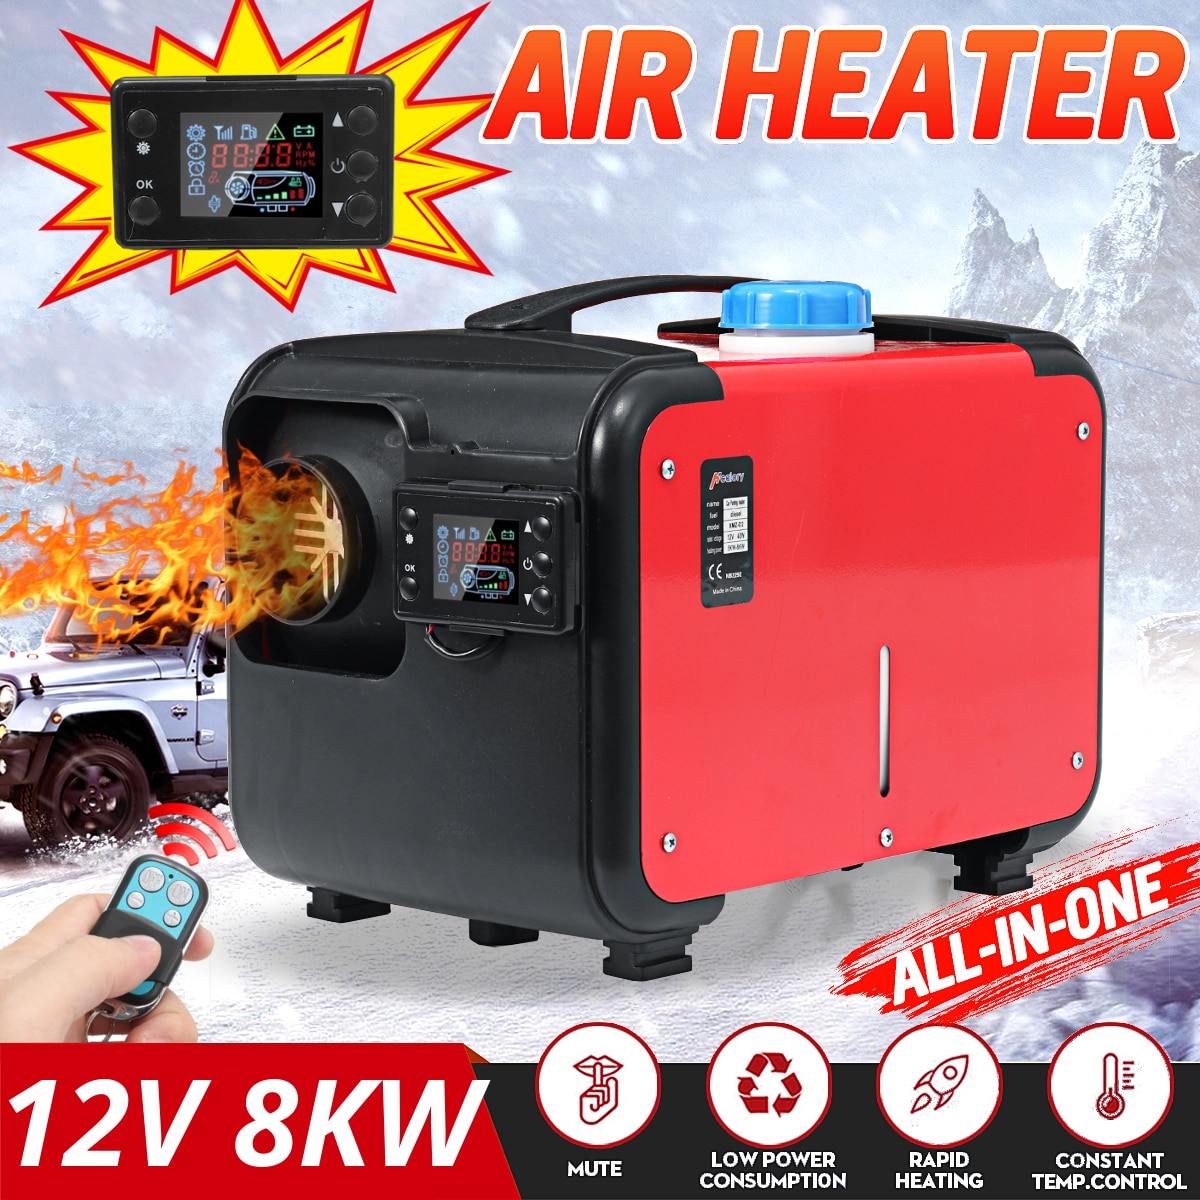 Hcalory All In One 1-8kW Air diesels Heater Red 8KW 12V One Hole Car Heater For Trucks Motor-Homes B